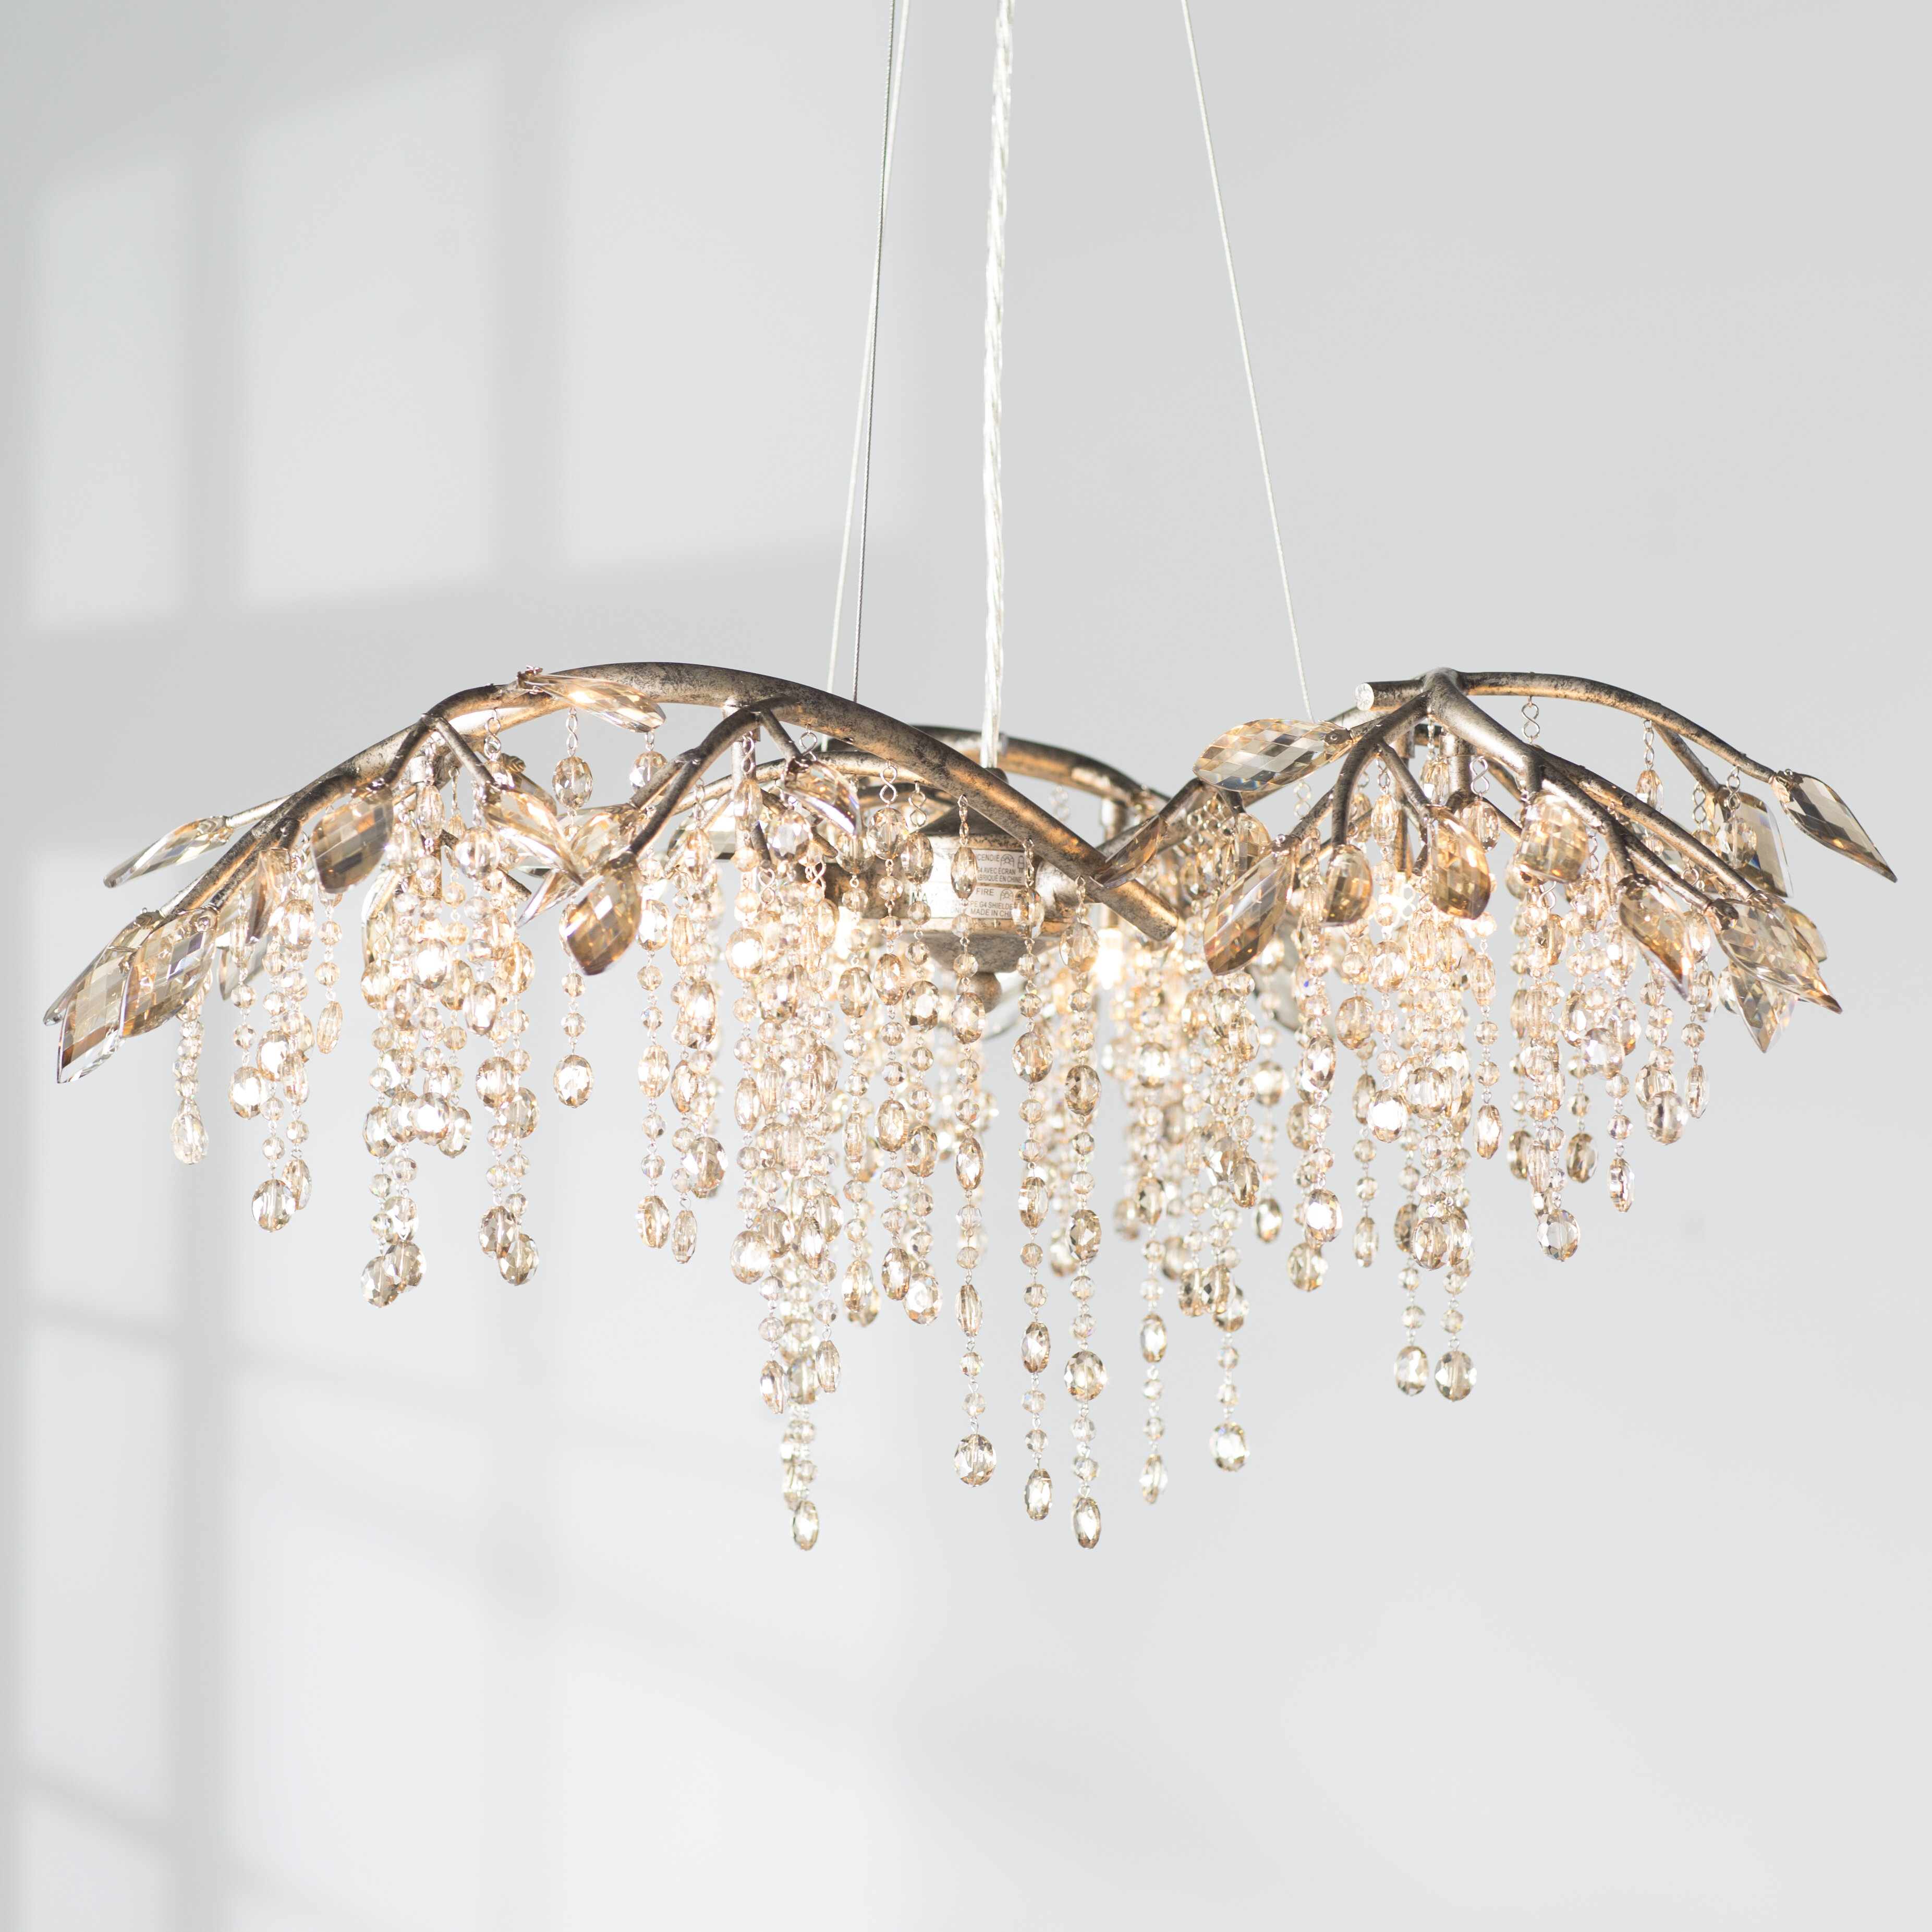 Willa arlo interiors destrie 6 light crystal chandelier reviews willa arlo interiors destrie 6 light crystal chandelier reviews wayfair aloadofball Images